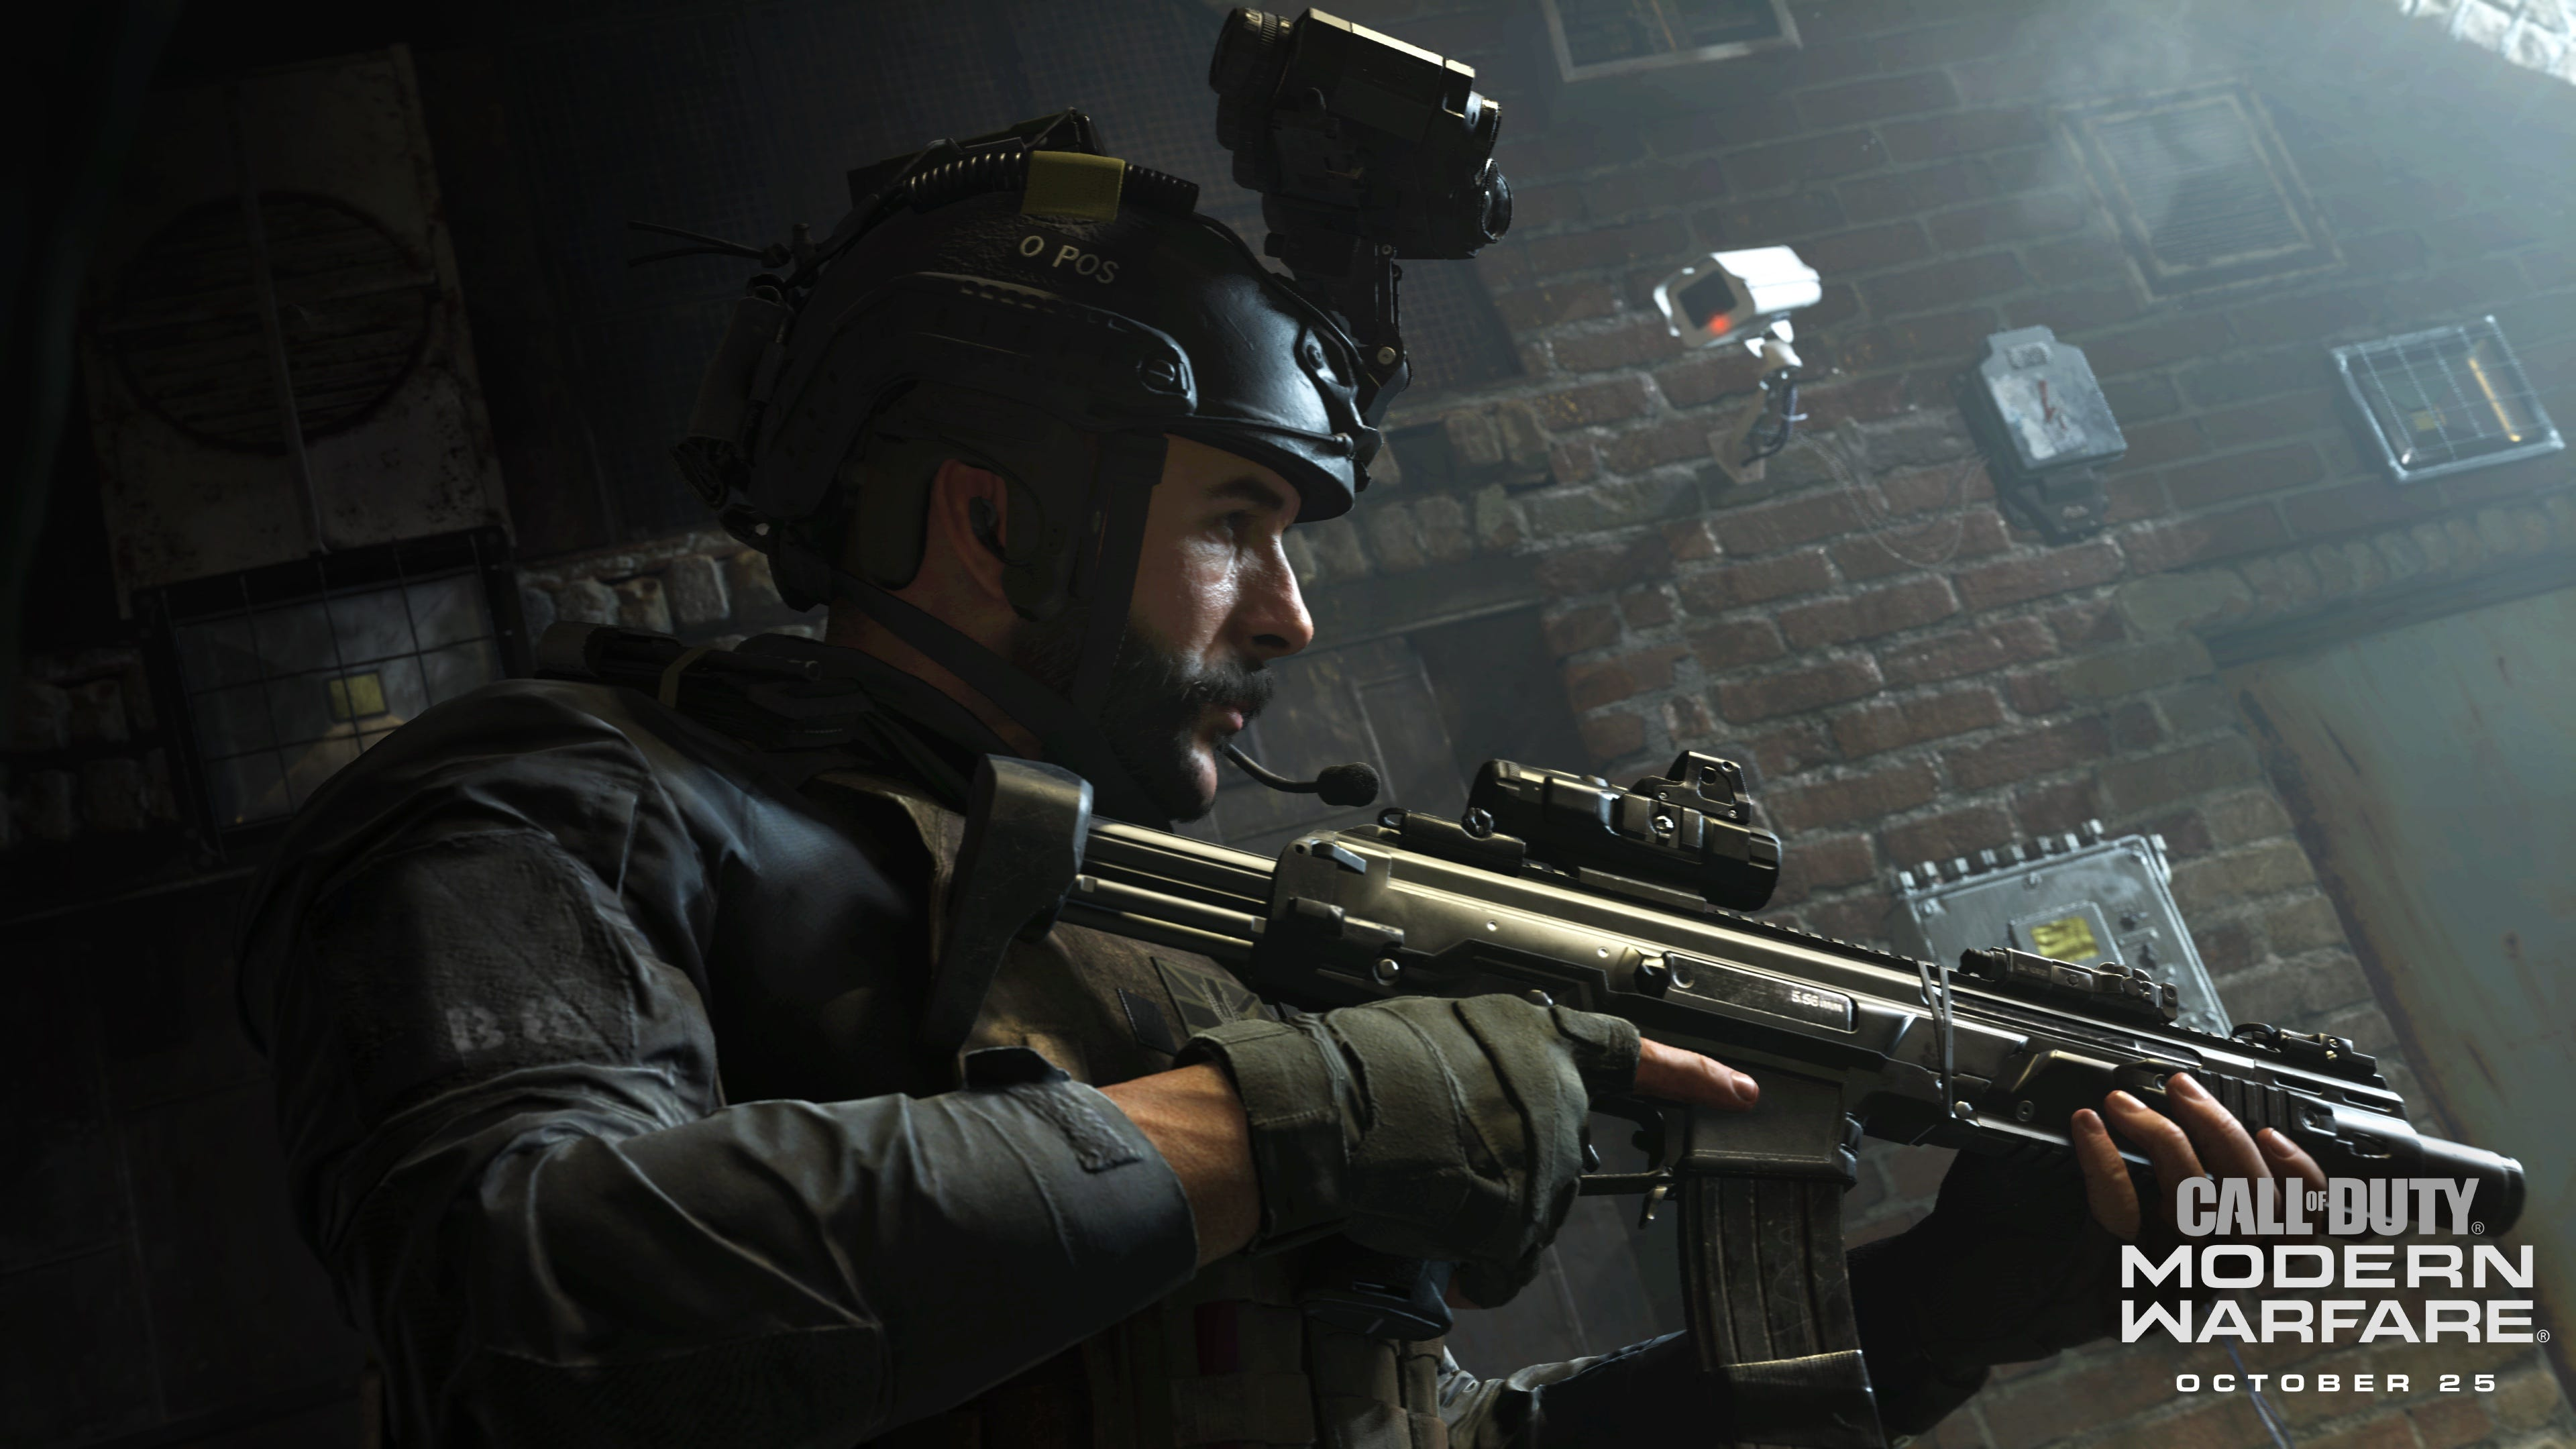 Call Of Duty Modern Warfare Video Game Takes Realism To Next Level